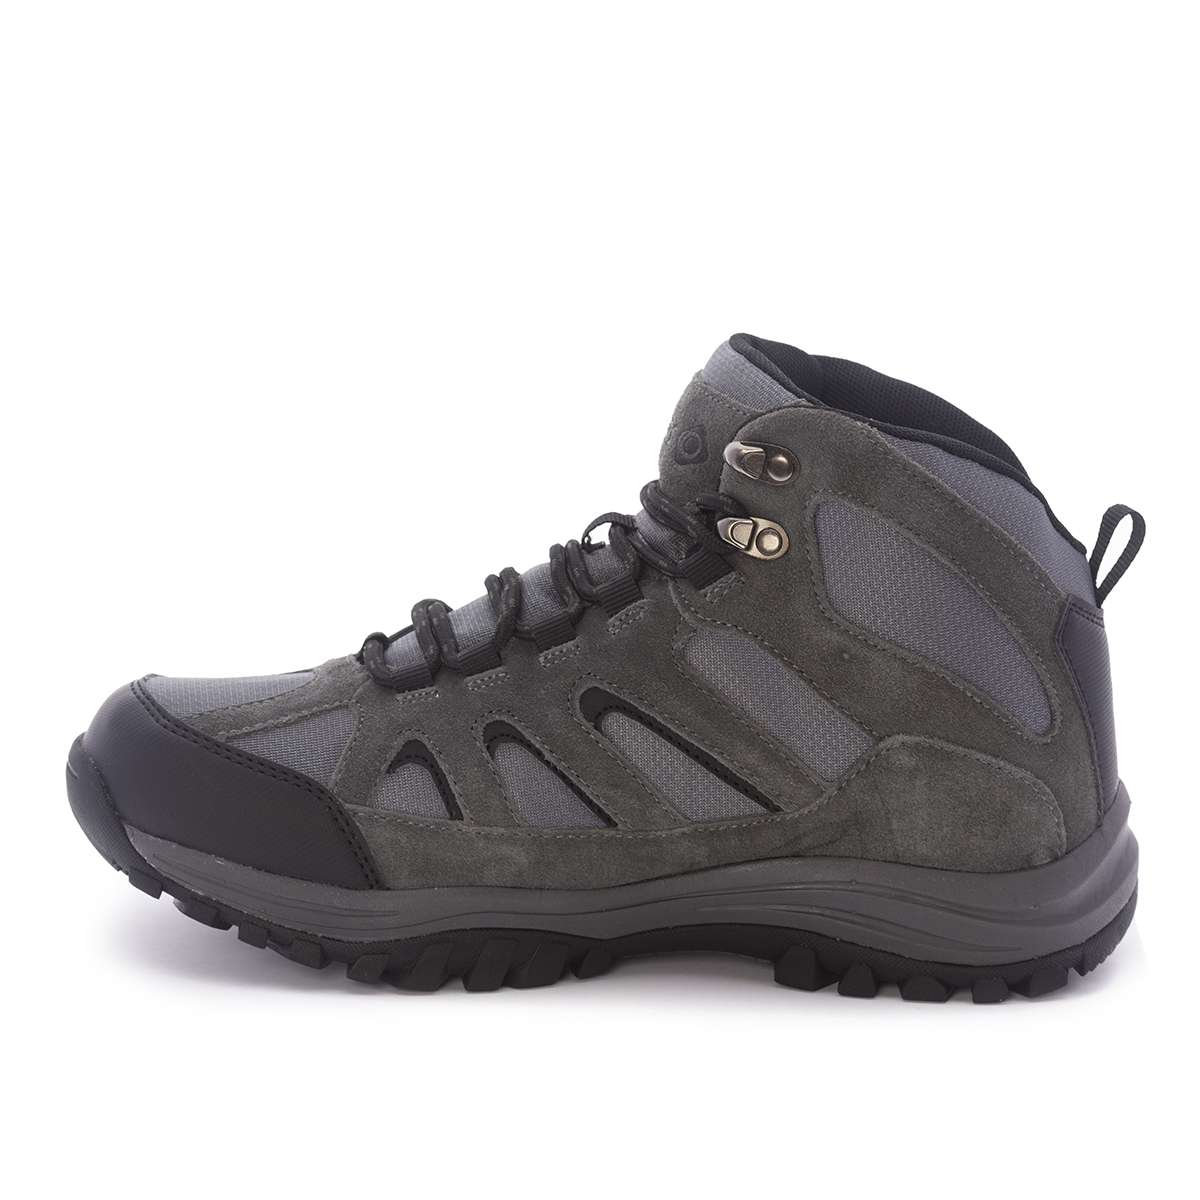 UNISEX'S TIMPA HIKING BOOTS BLACK